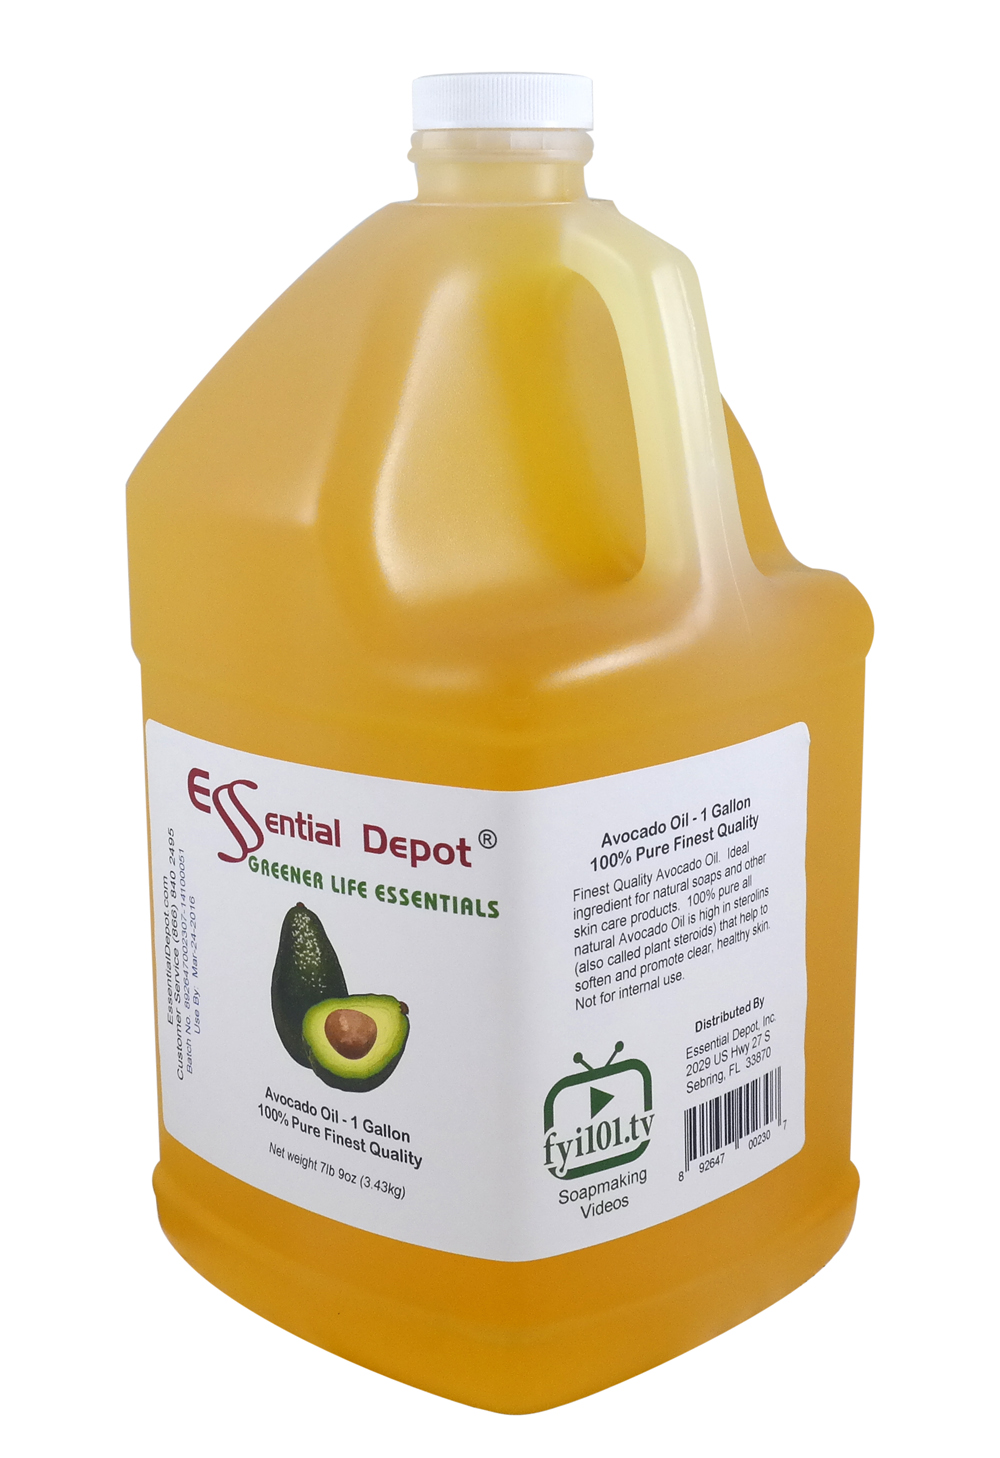 Avocado Oil - Finest Quality - 1 Gallon - Approx 8lbs - Shipped in 1 Gallon Container